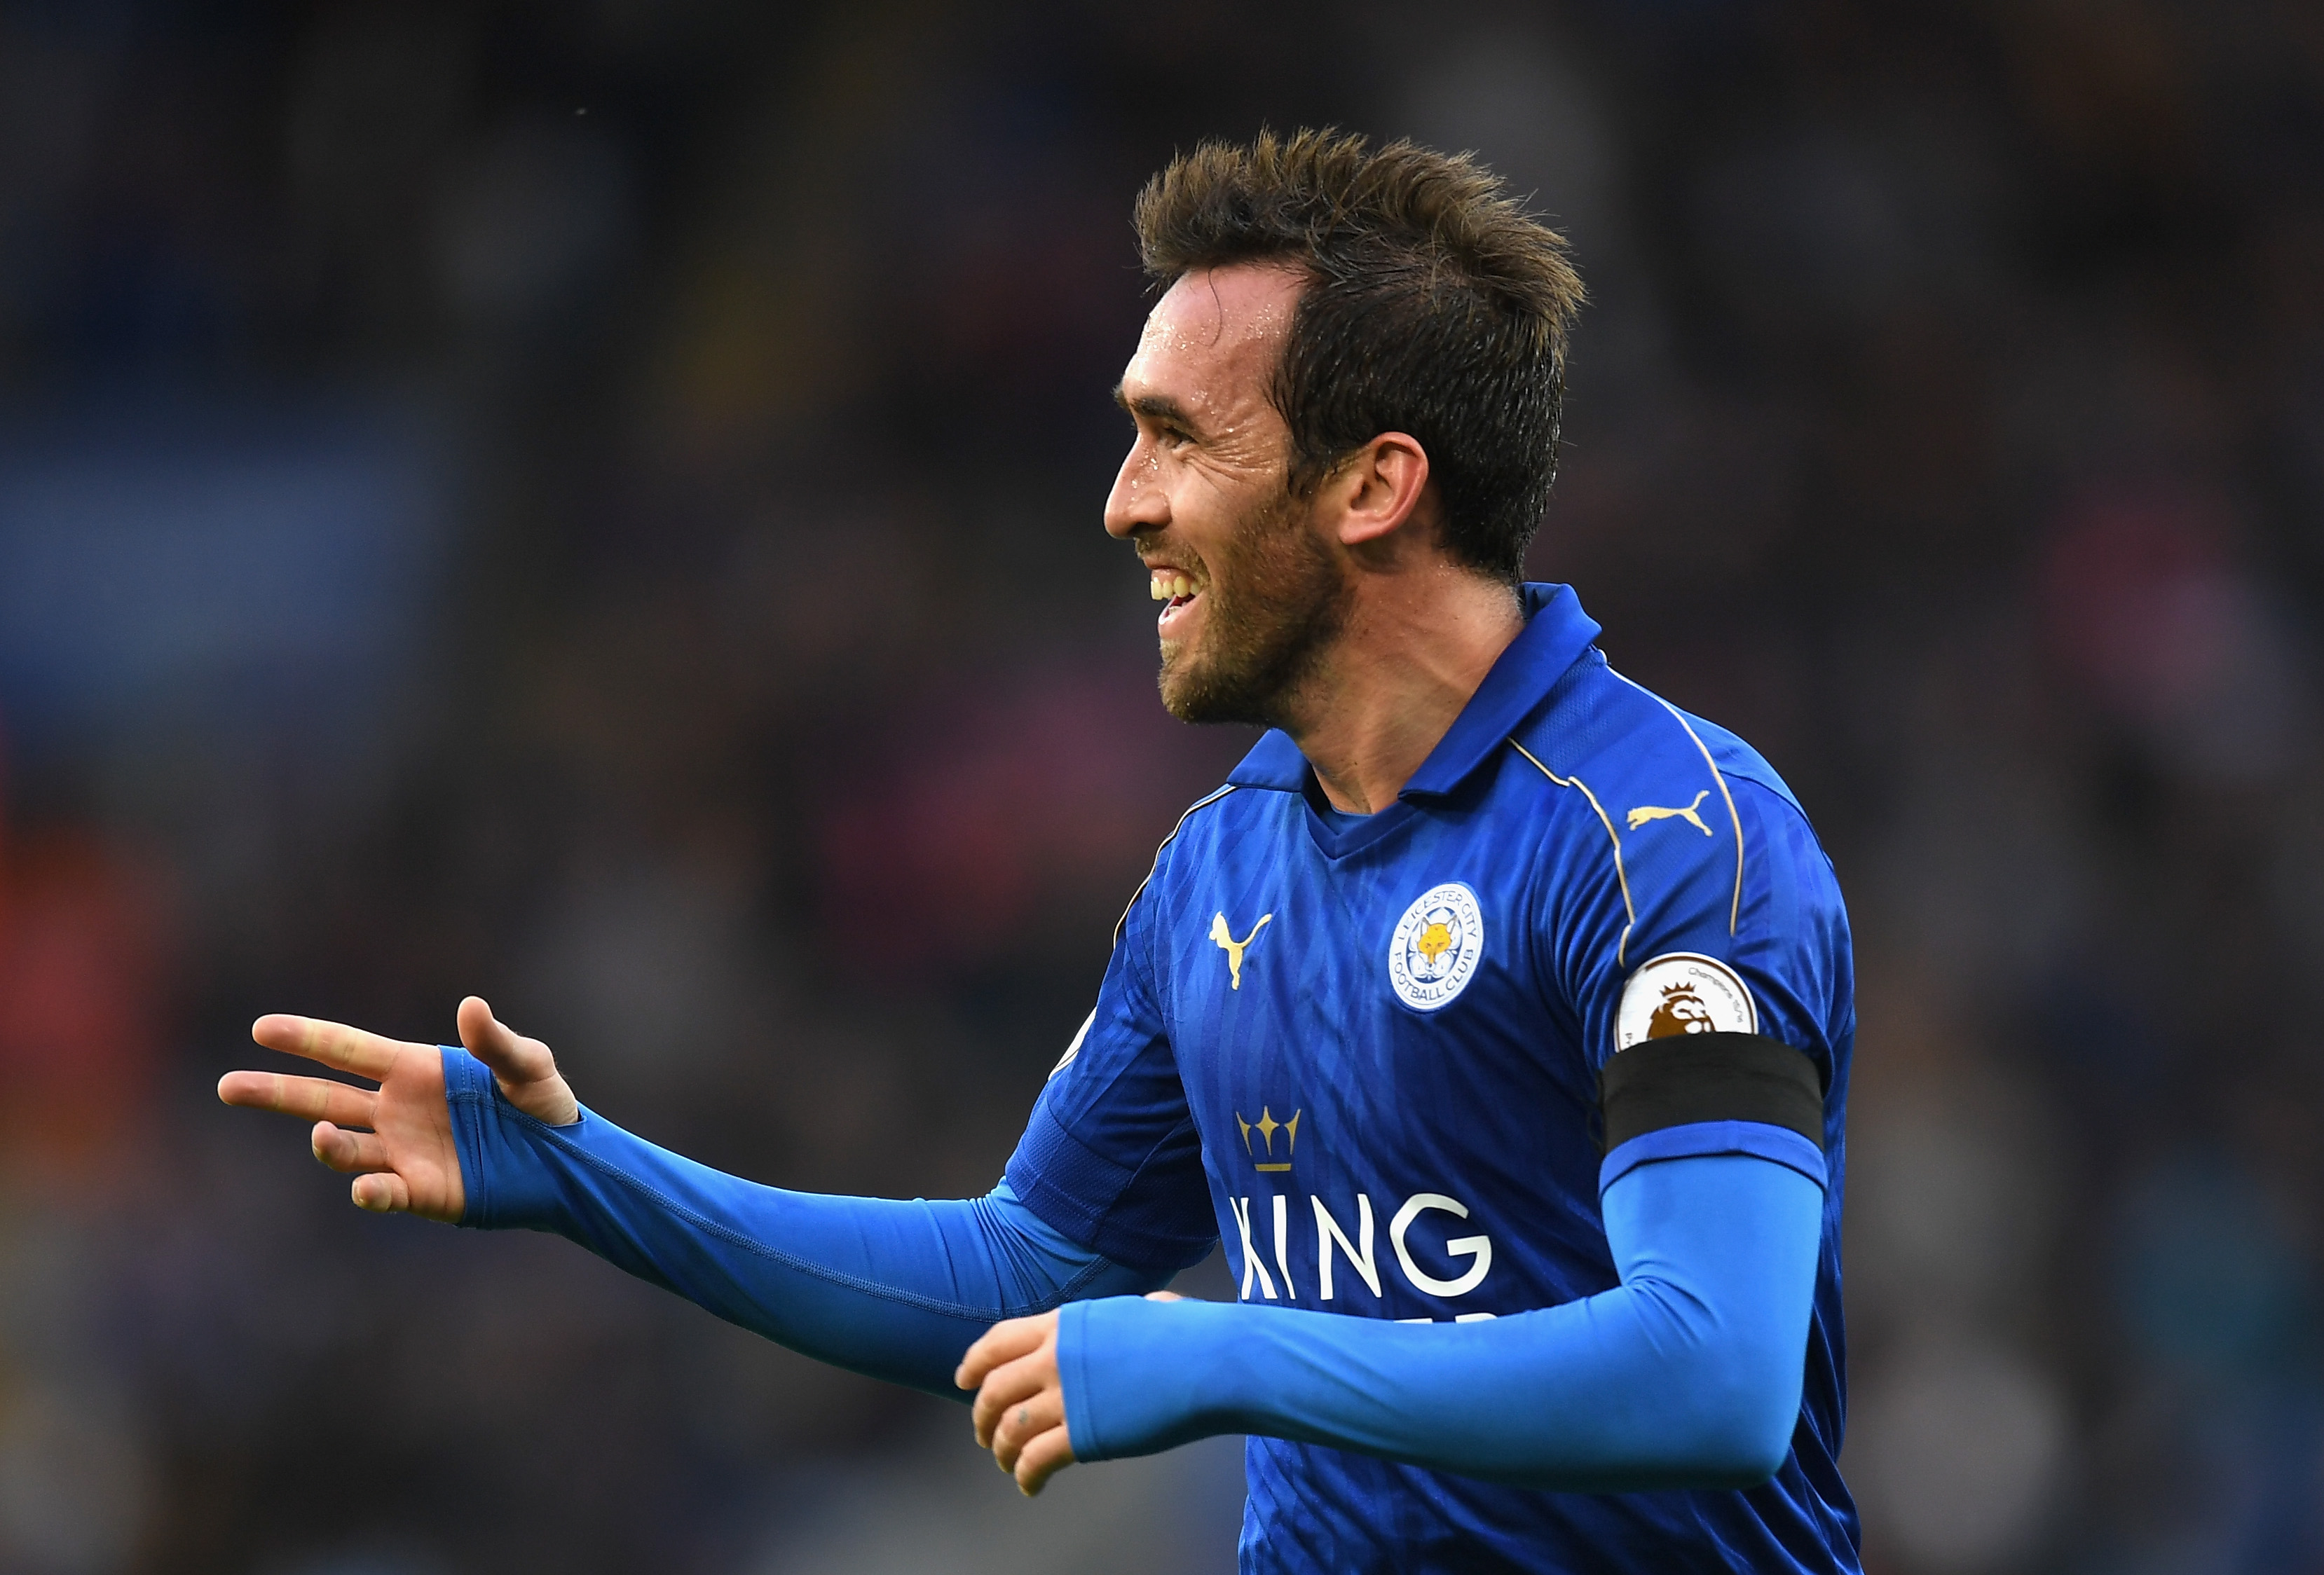 English Premier League winner Christian Fuchs on Leicester City attempting Mission: Impossible 2